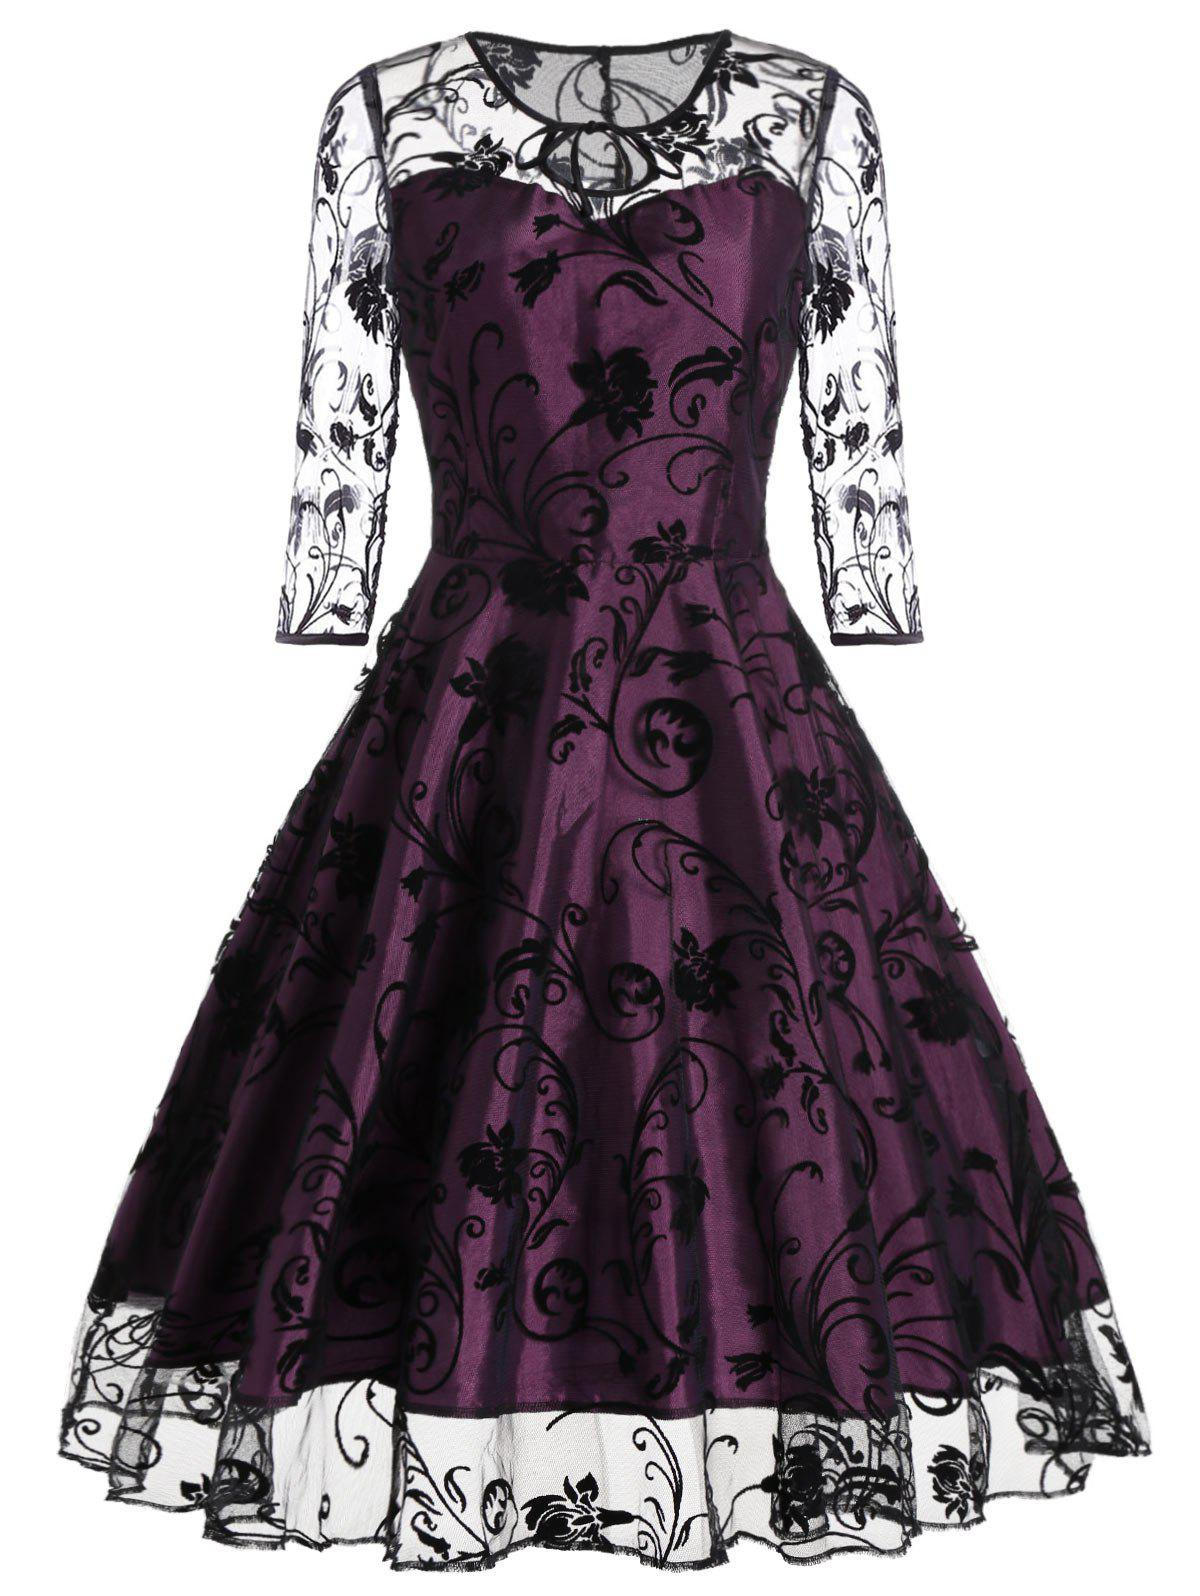 Sheer Sleeve Keyhole Lace Vintage DressWOMEN<br><br>Size: M; Color: PURPLISH RED; Style: Vintage; Material: Polyester; Silhouette: A-Line; Dresses Length: Mid-Calf; Neckline: Keyhole Neck; Sleeve Length: 3/4 Length Sleeves; Embellishment: Lace; Pattern Type: Floral; With Belt: No; Season: Fall,Spring,Summer; Weight: 0.3500kg; Package Contents: 1 x Dress;